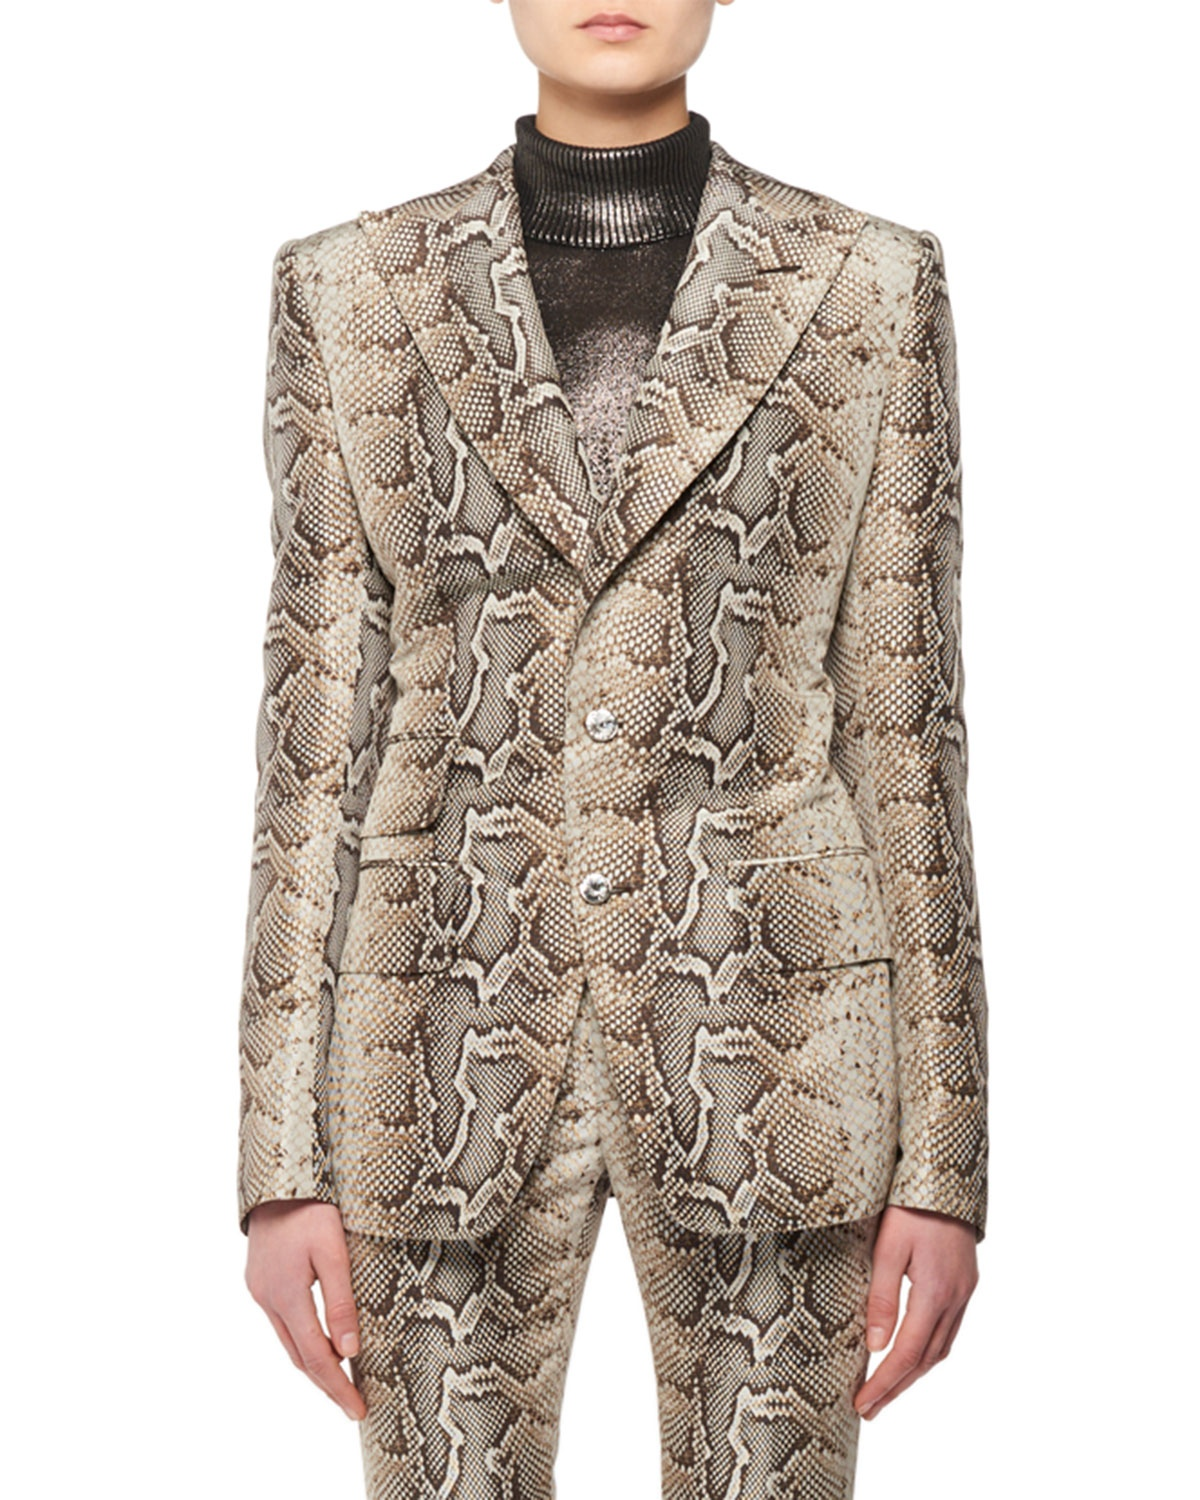 Two-Button Snake-Print Stretch-Cotton Twill Jacket by Tom Ford, available on neimanmarcus.com for $5250 Kylie Jenner Outerwear Exact Product